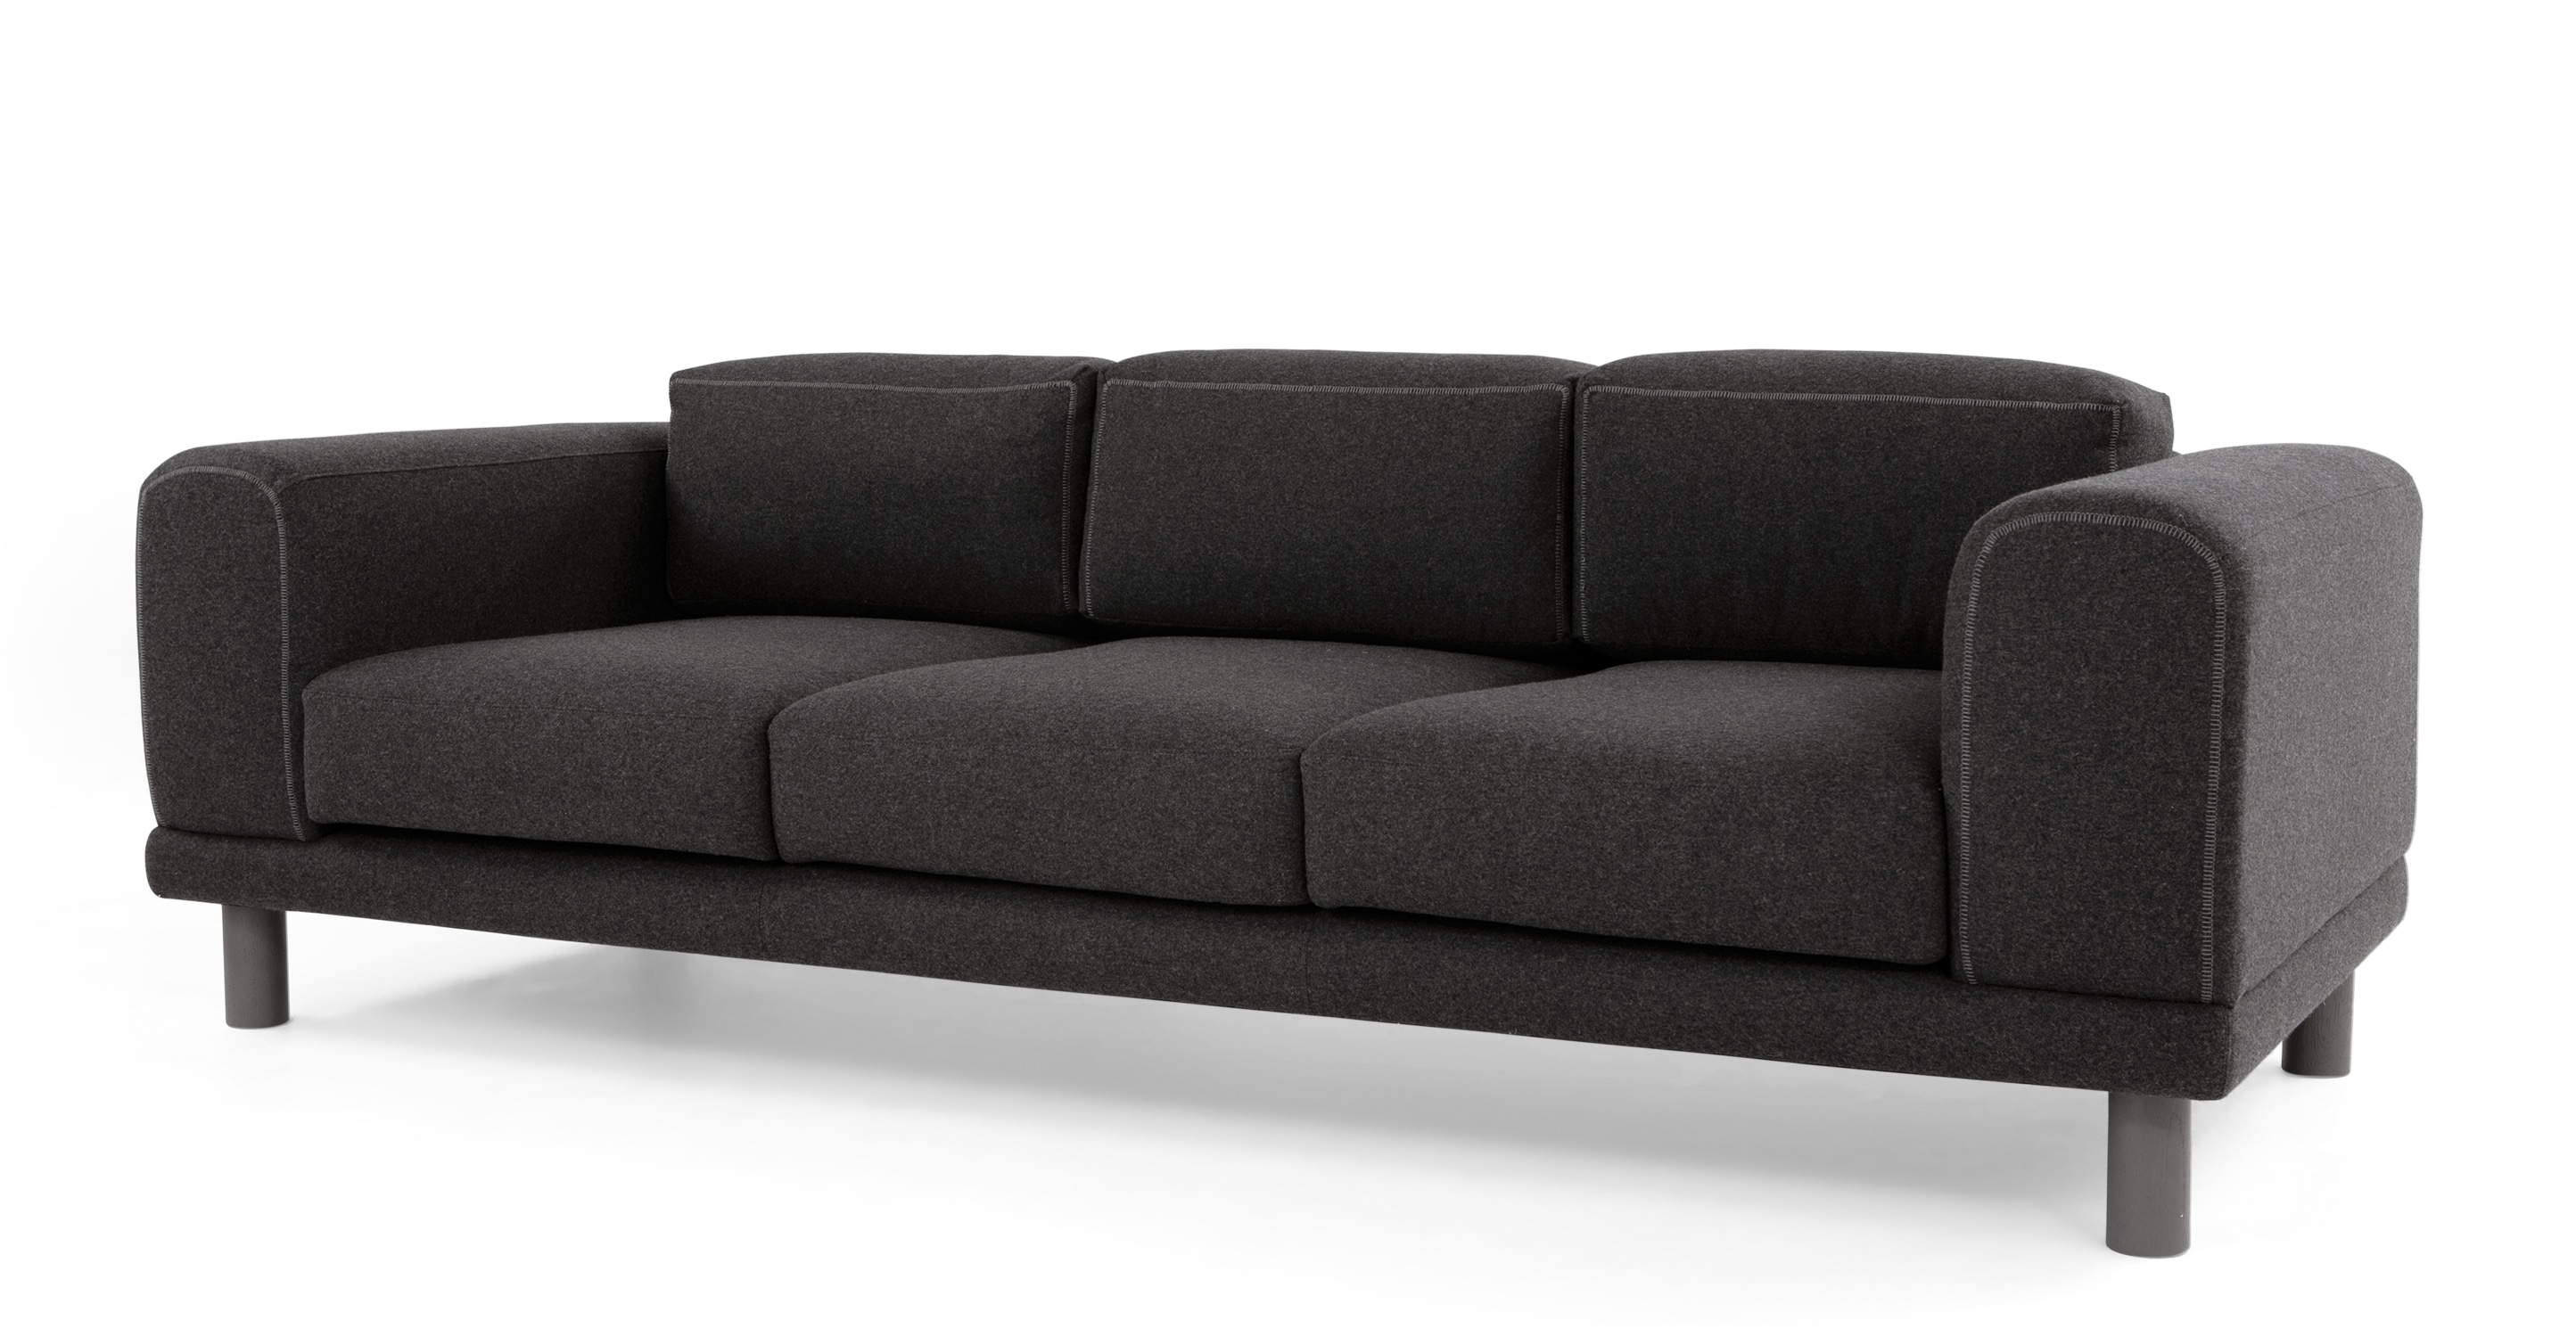 Turin 3 Seater Sofa Kestrel Grey Made For Three Seater Sofas (Image 15 of 15)